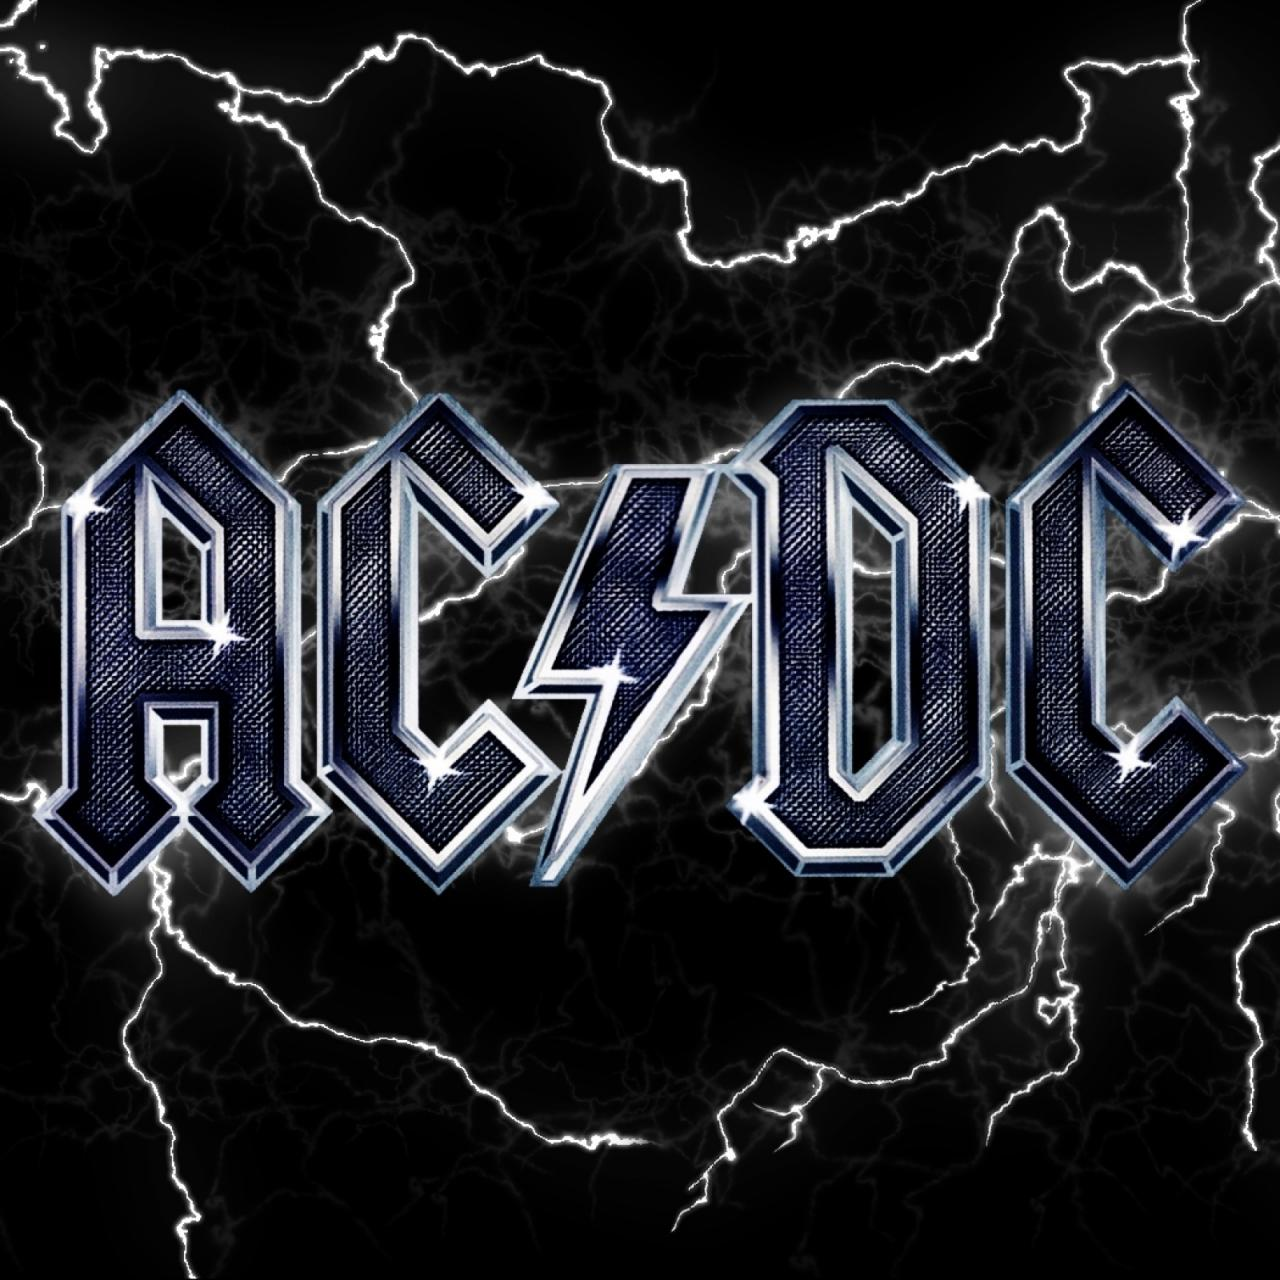 ac dc wallpaper hd wallpapersafari